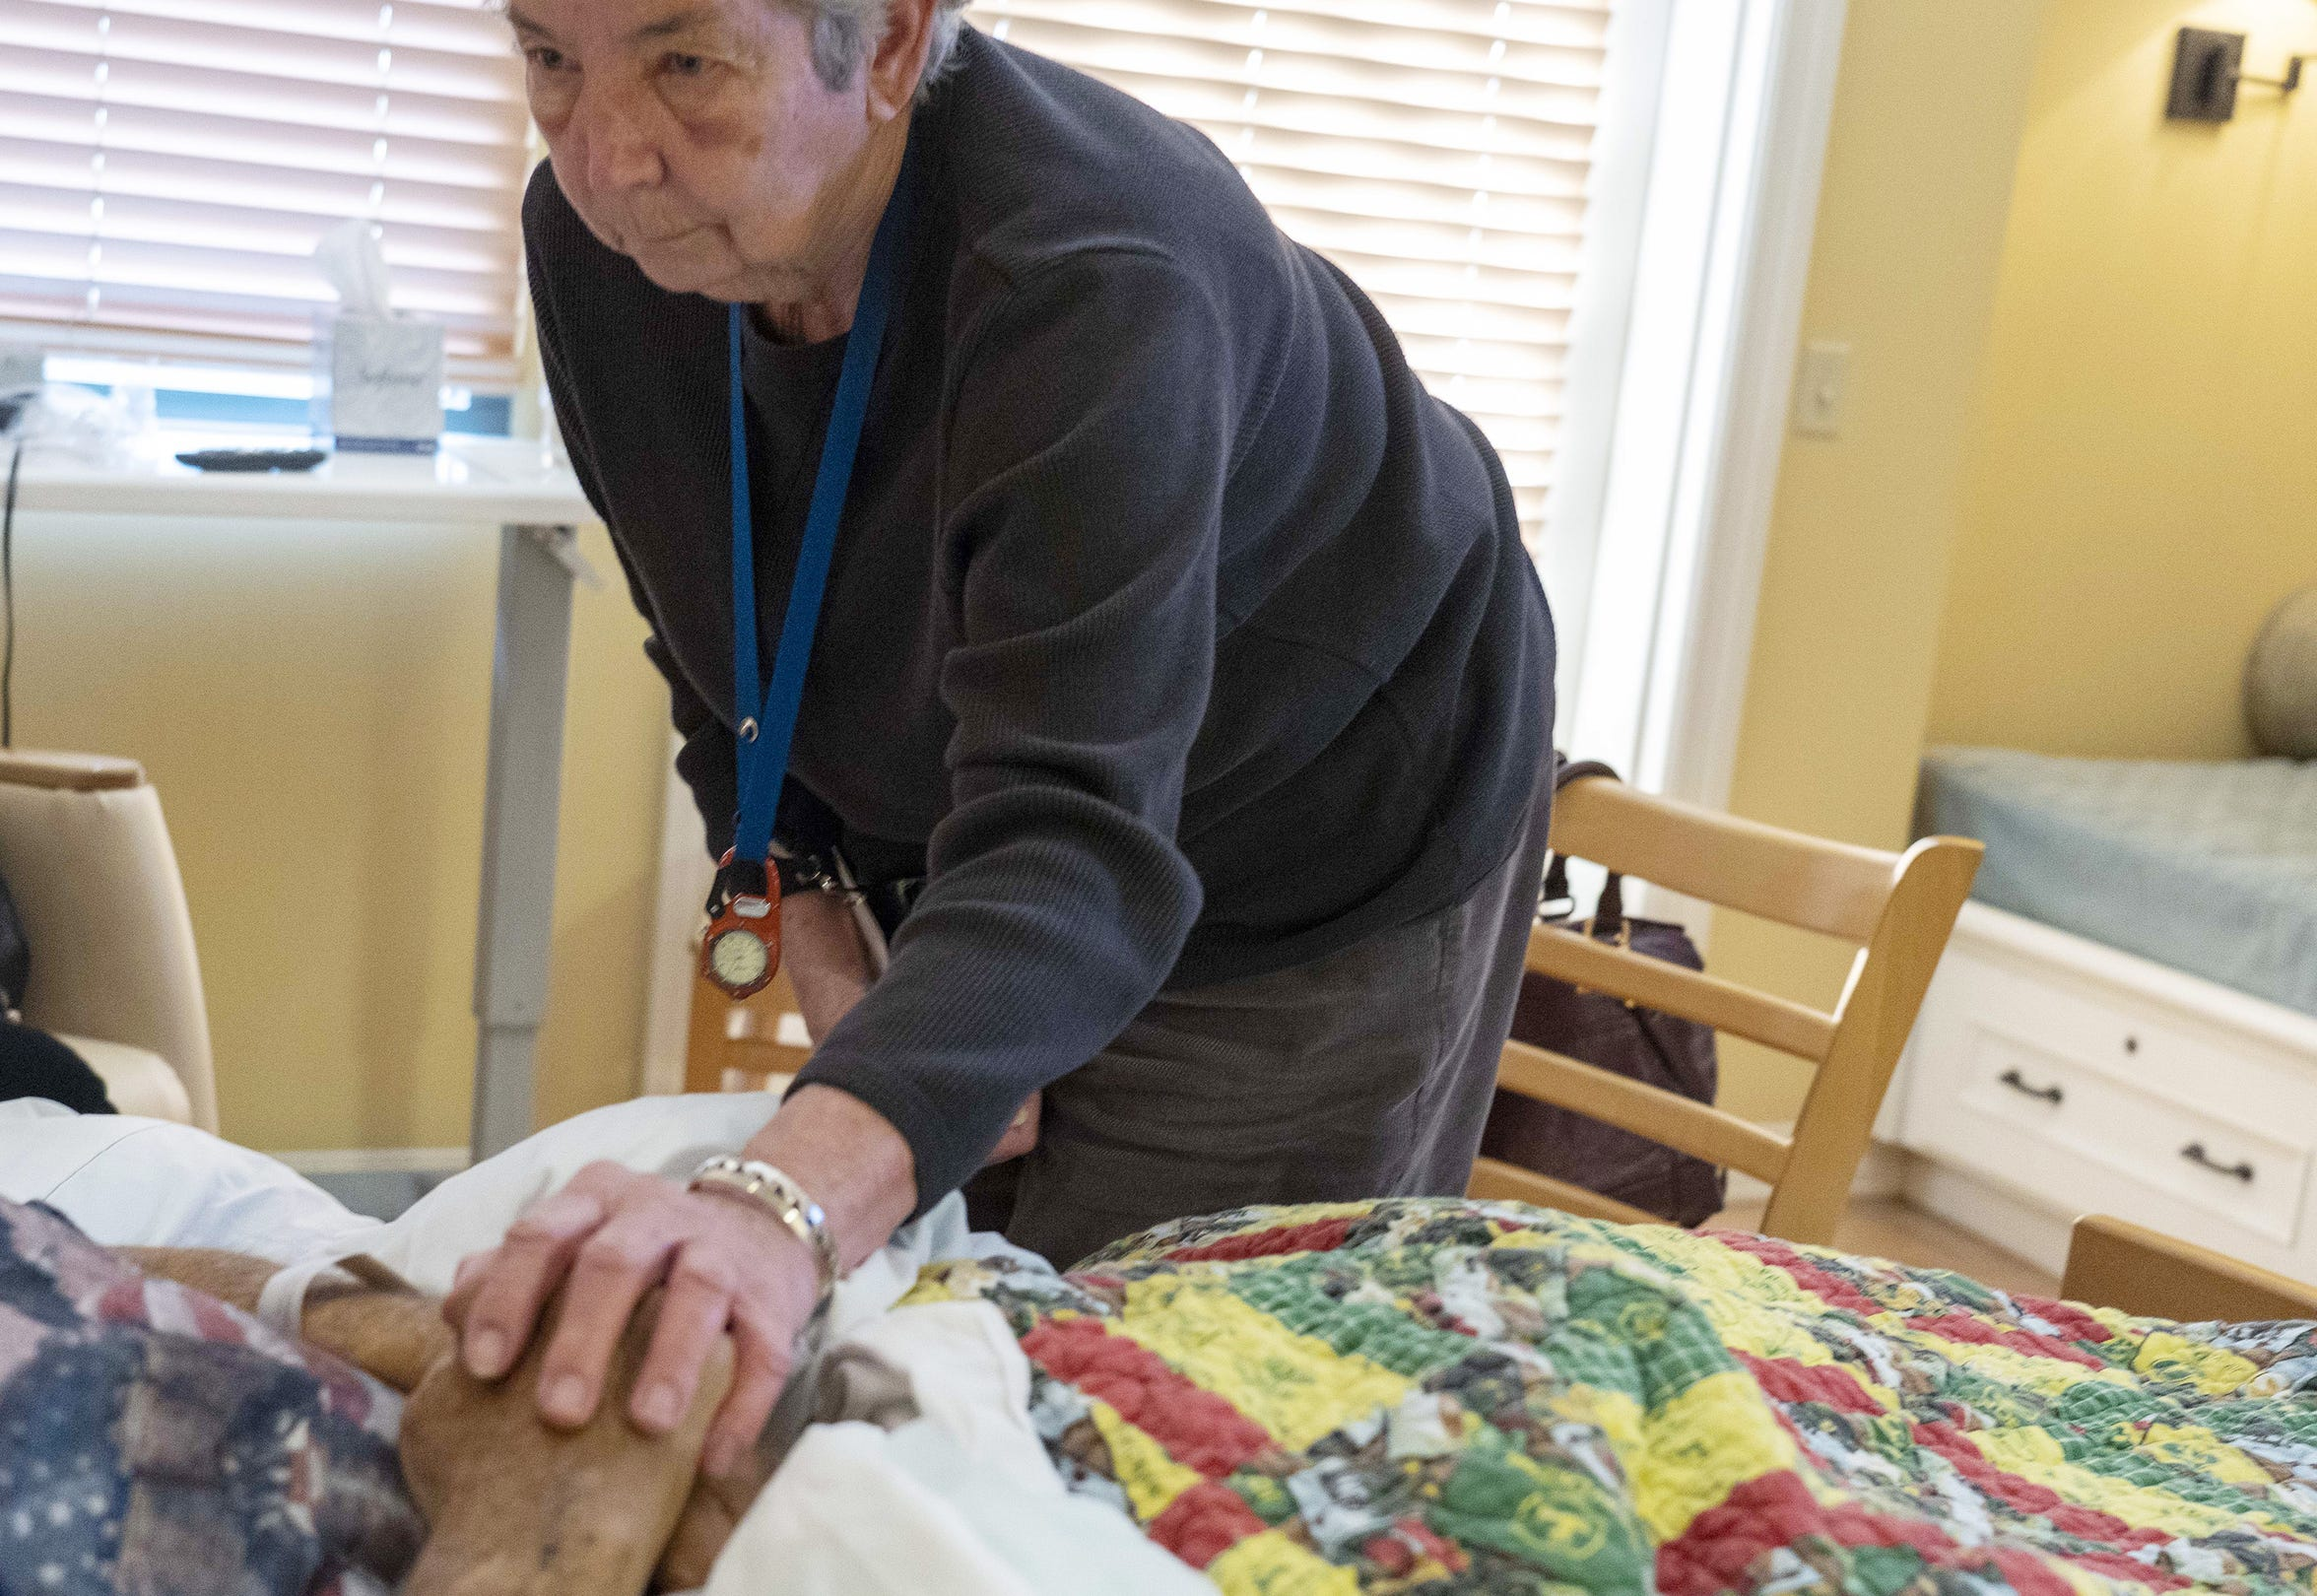 Jane Conrow was among the first volunteers for Hospice of the Valley's 11th Hour Companion program. Since then she'd sat with 215 patients.